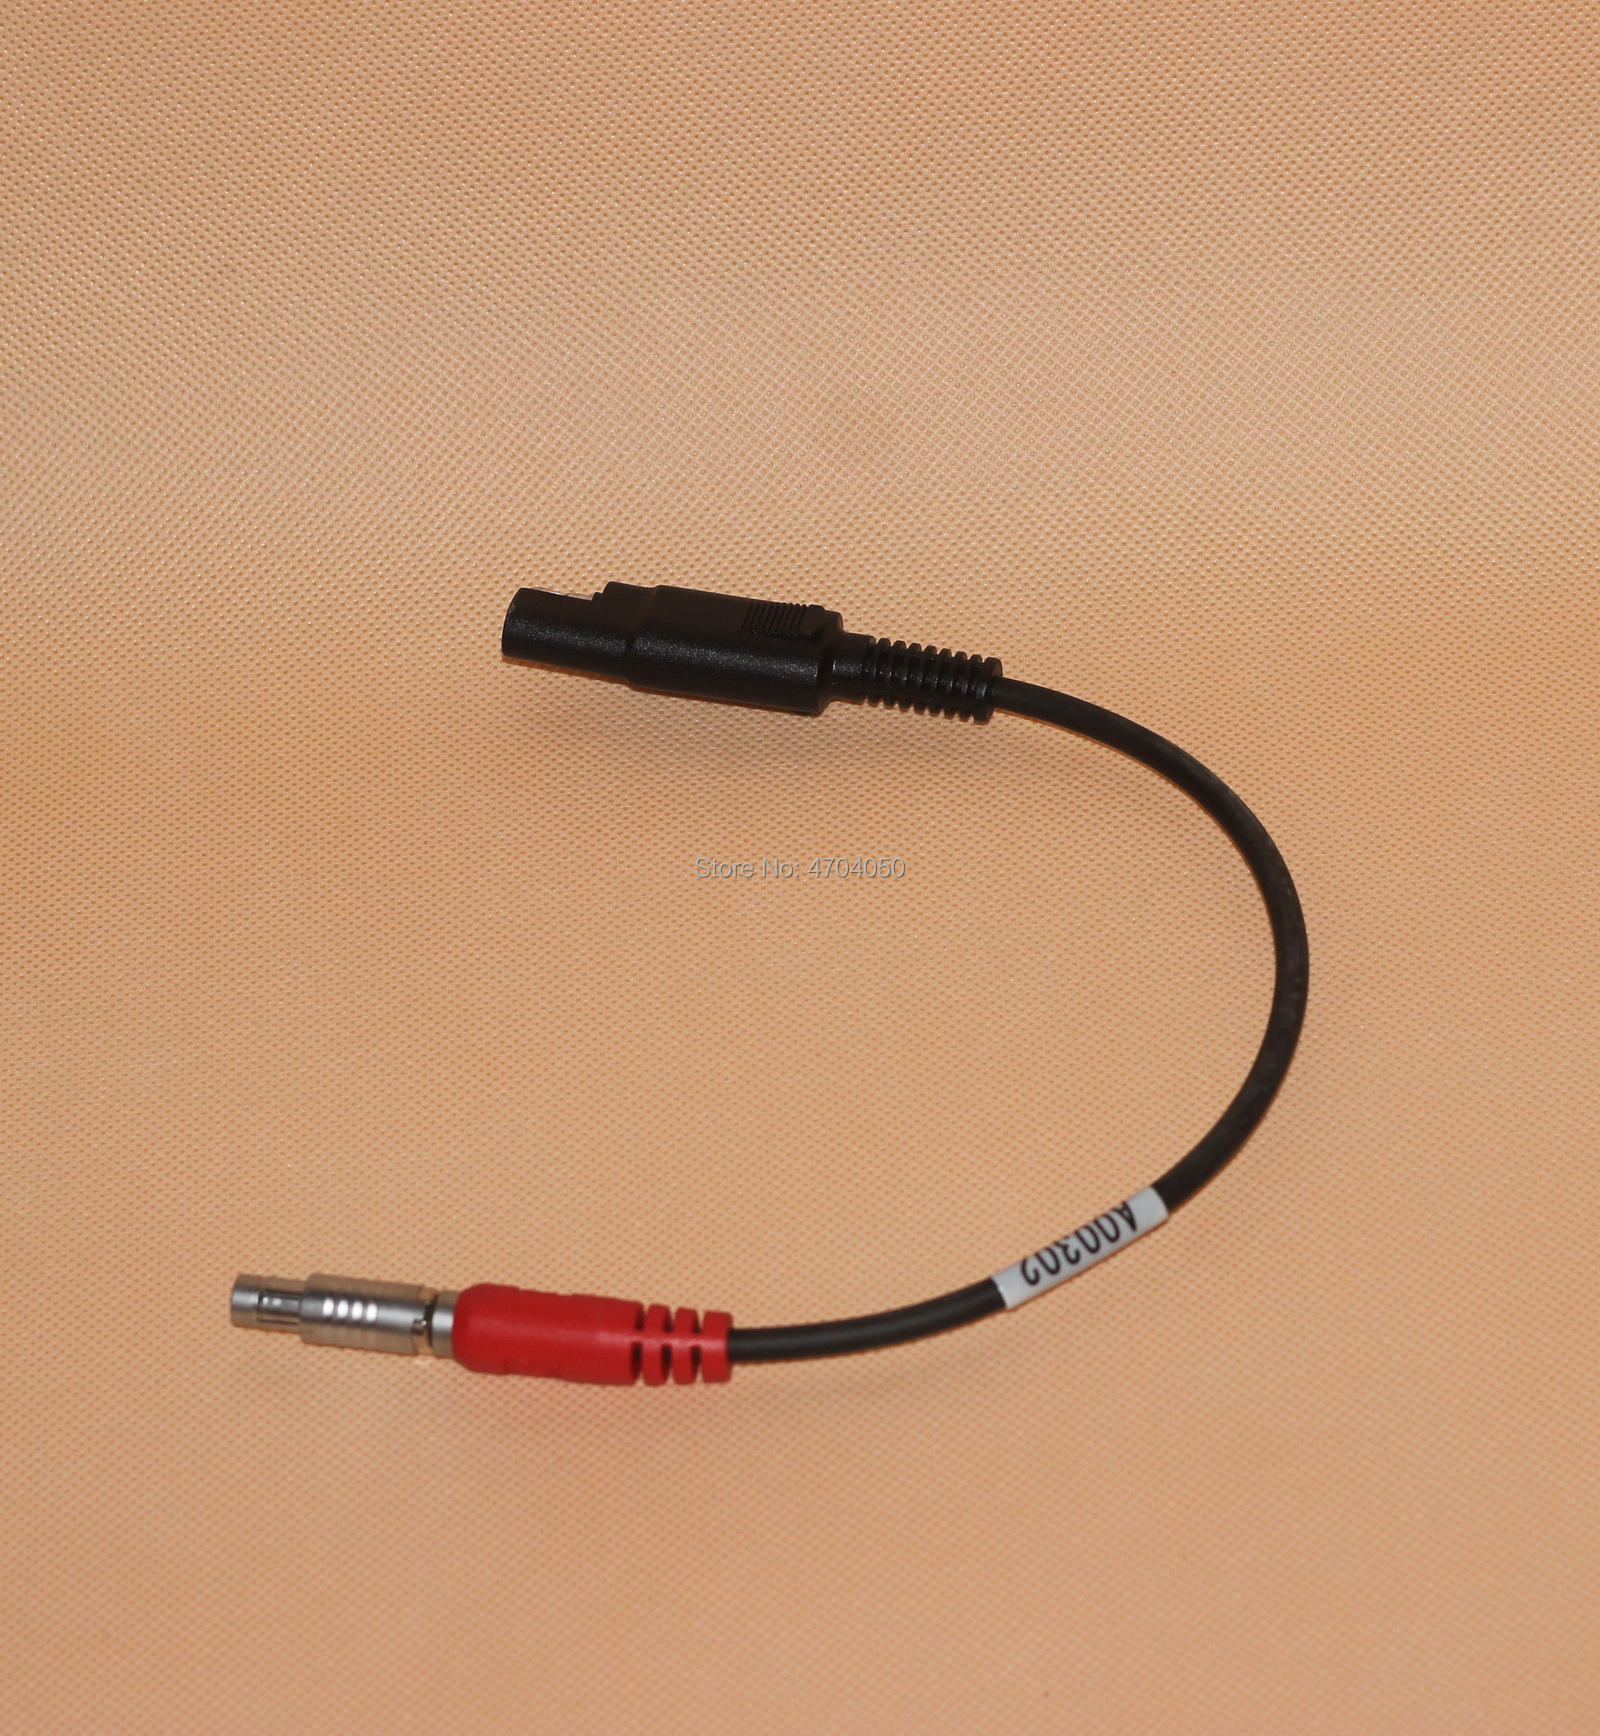 Brand New Topcon Power Cable for GPS HiPer or HiPer Lite wired to SAE 2 pin